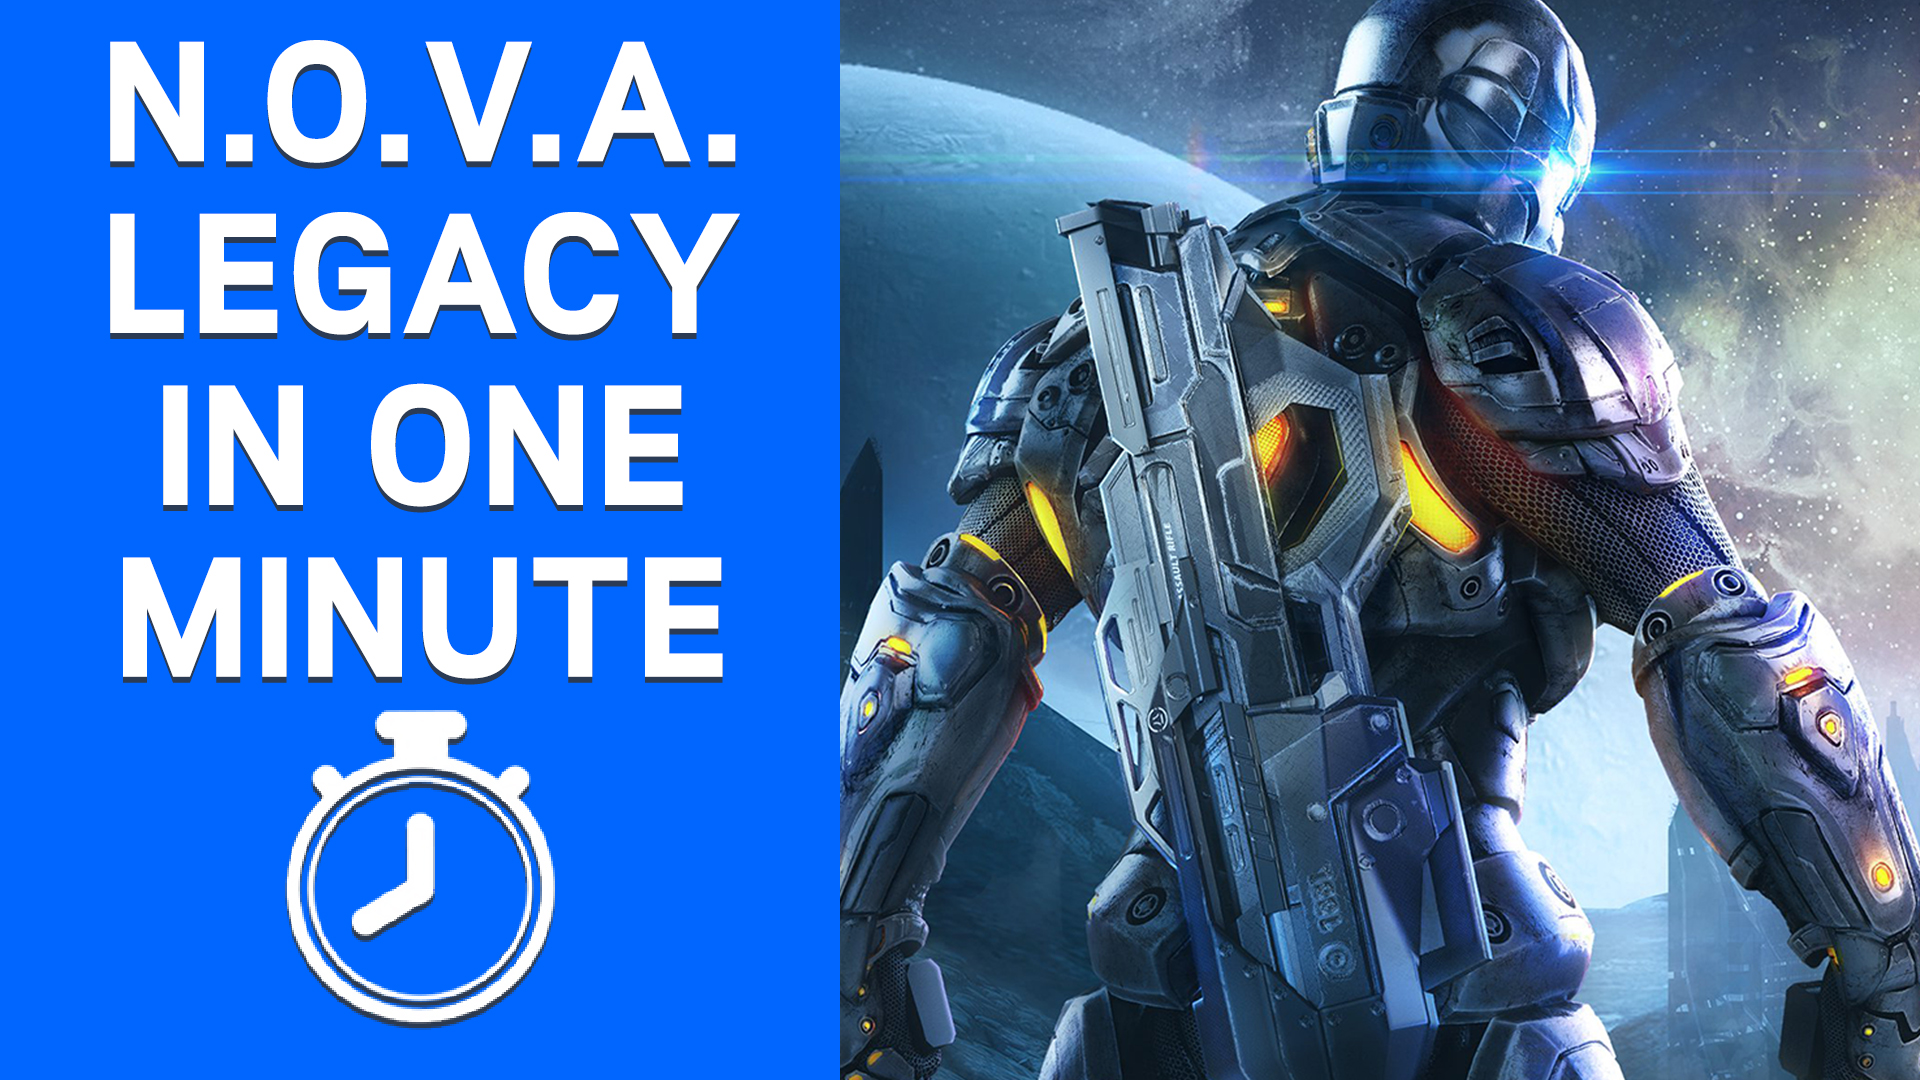 N.O.V.A. Legacy in One Minute